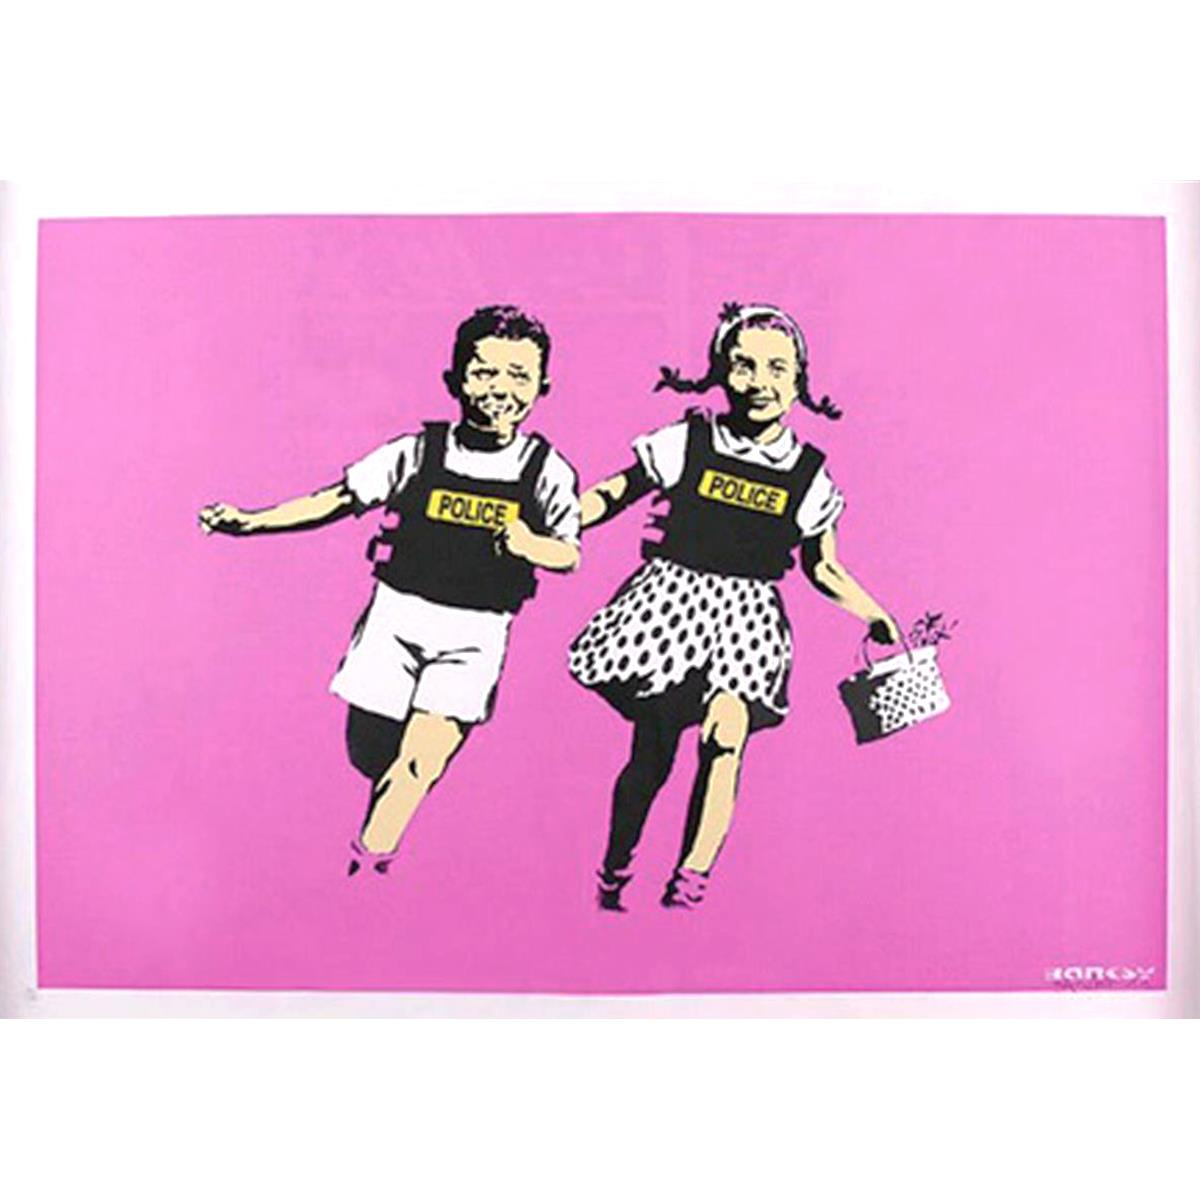 Jack and Jill (Police Kids) (Pink) by Banksy